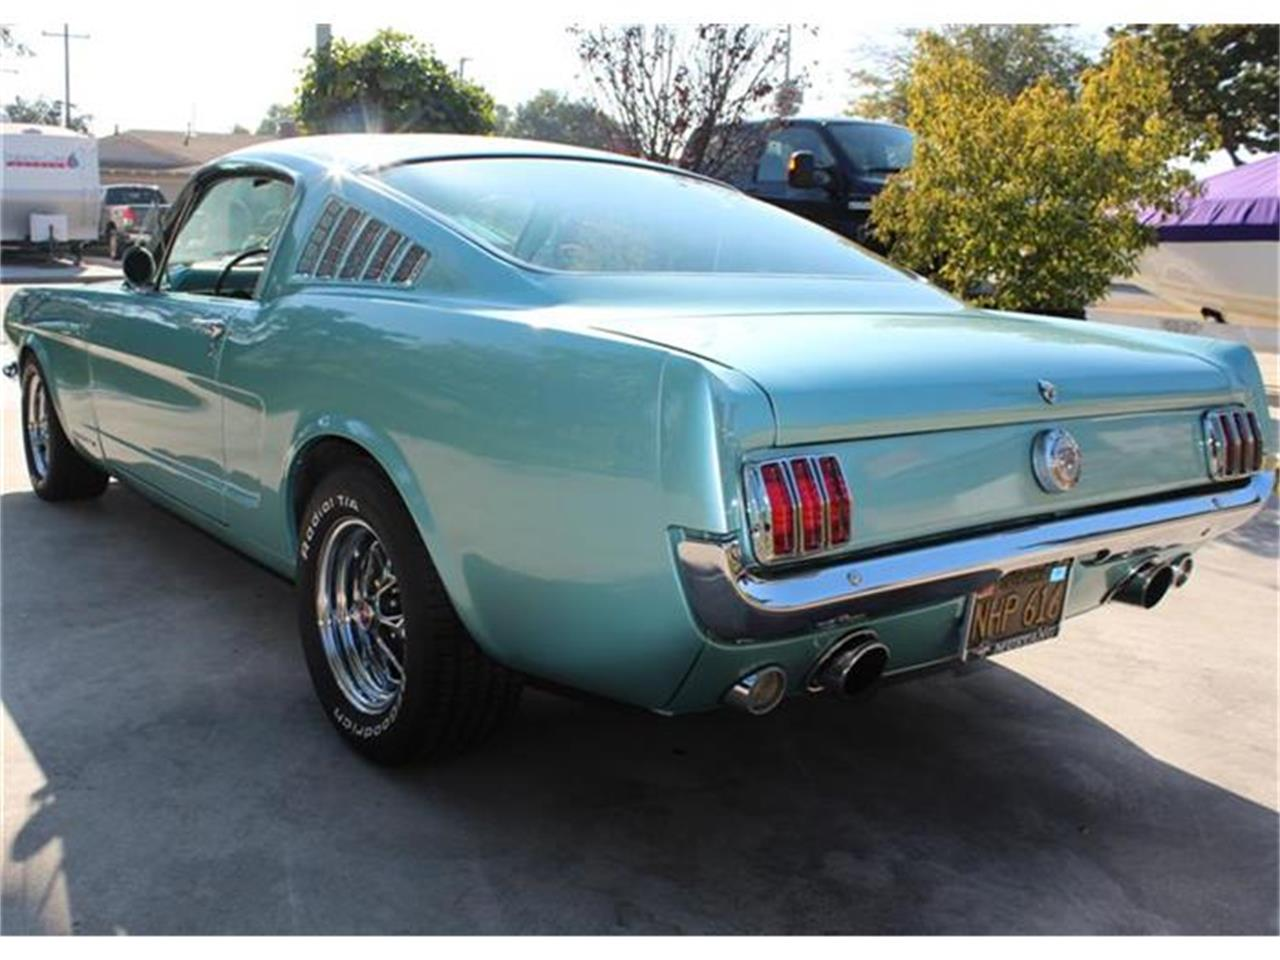 Large Picture of '66 Mustang located in West Covina California - $40,000.00 - BFEI